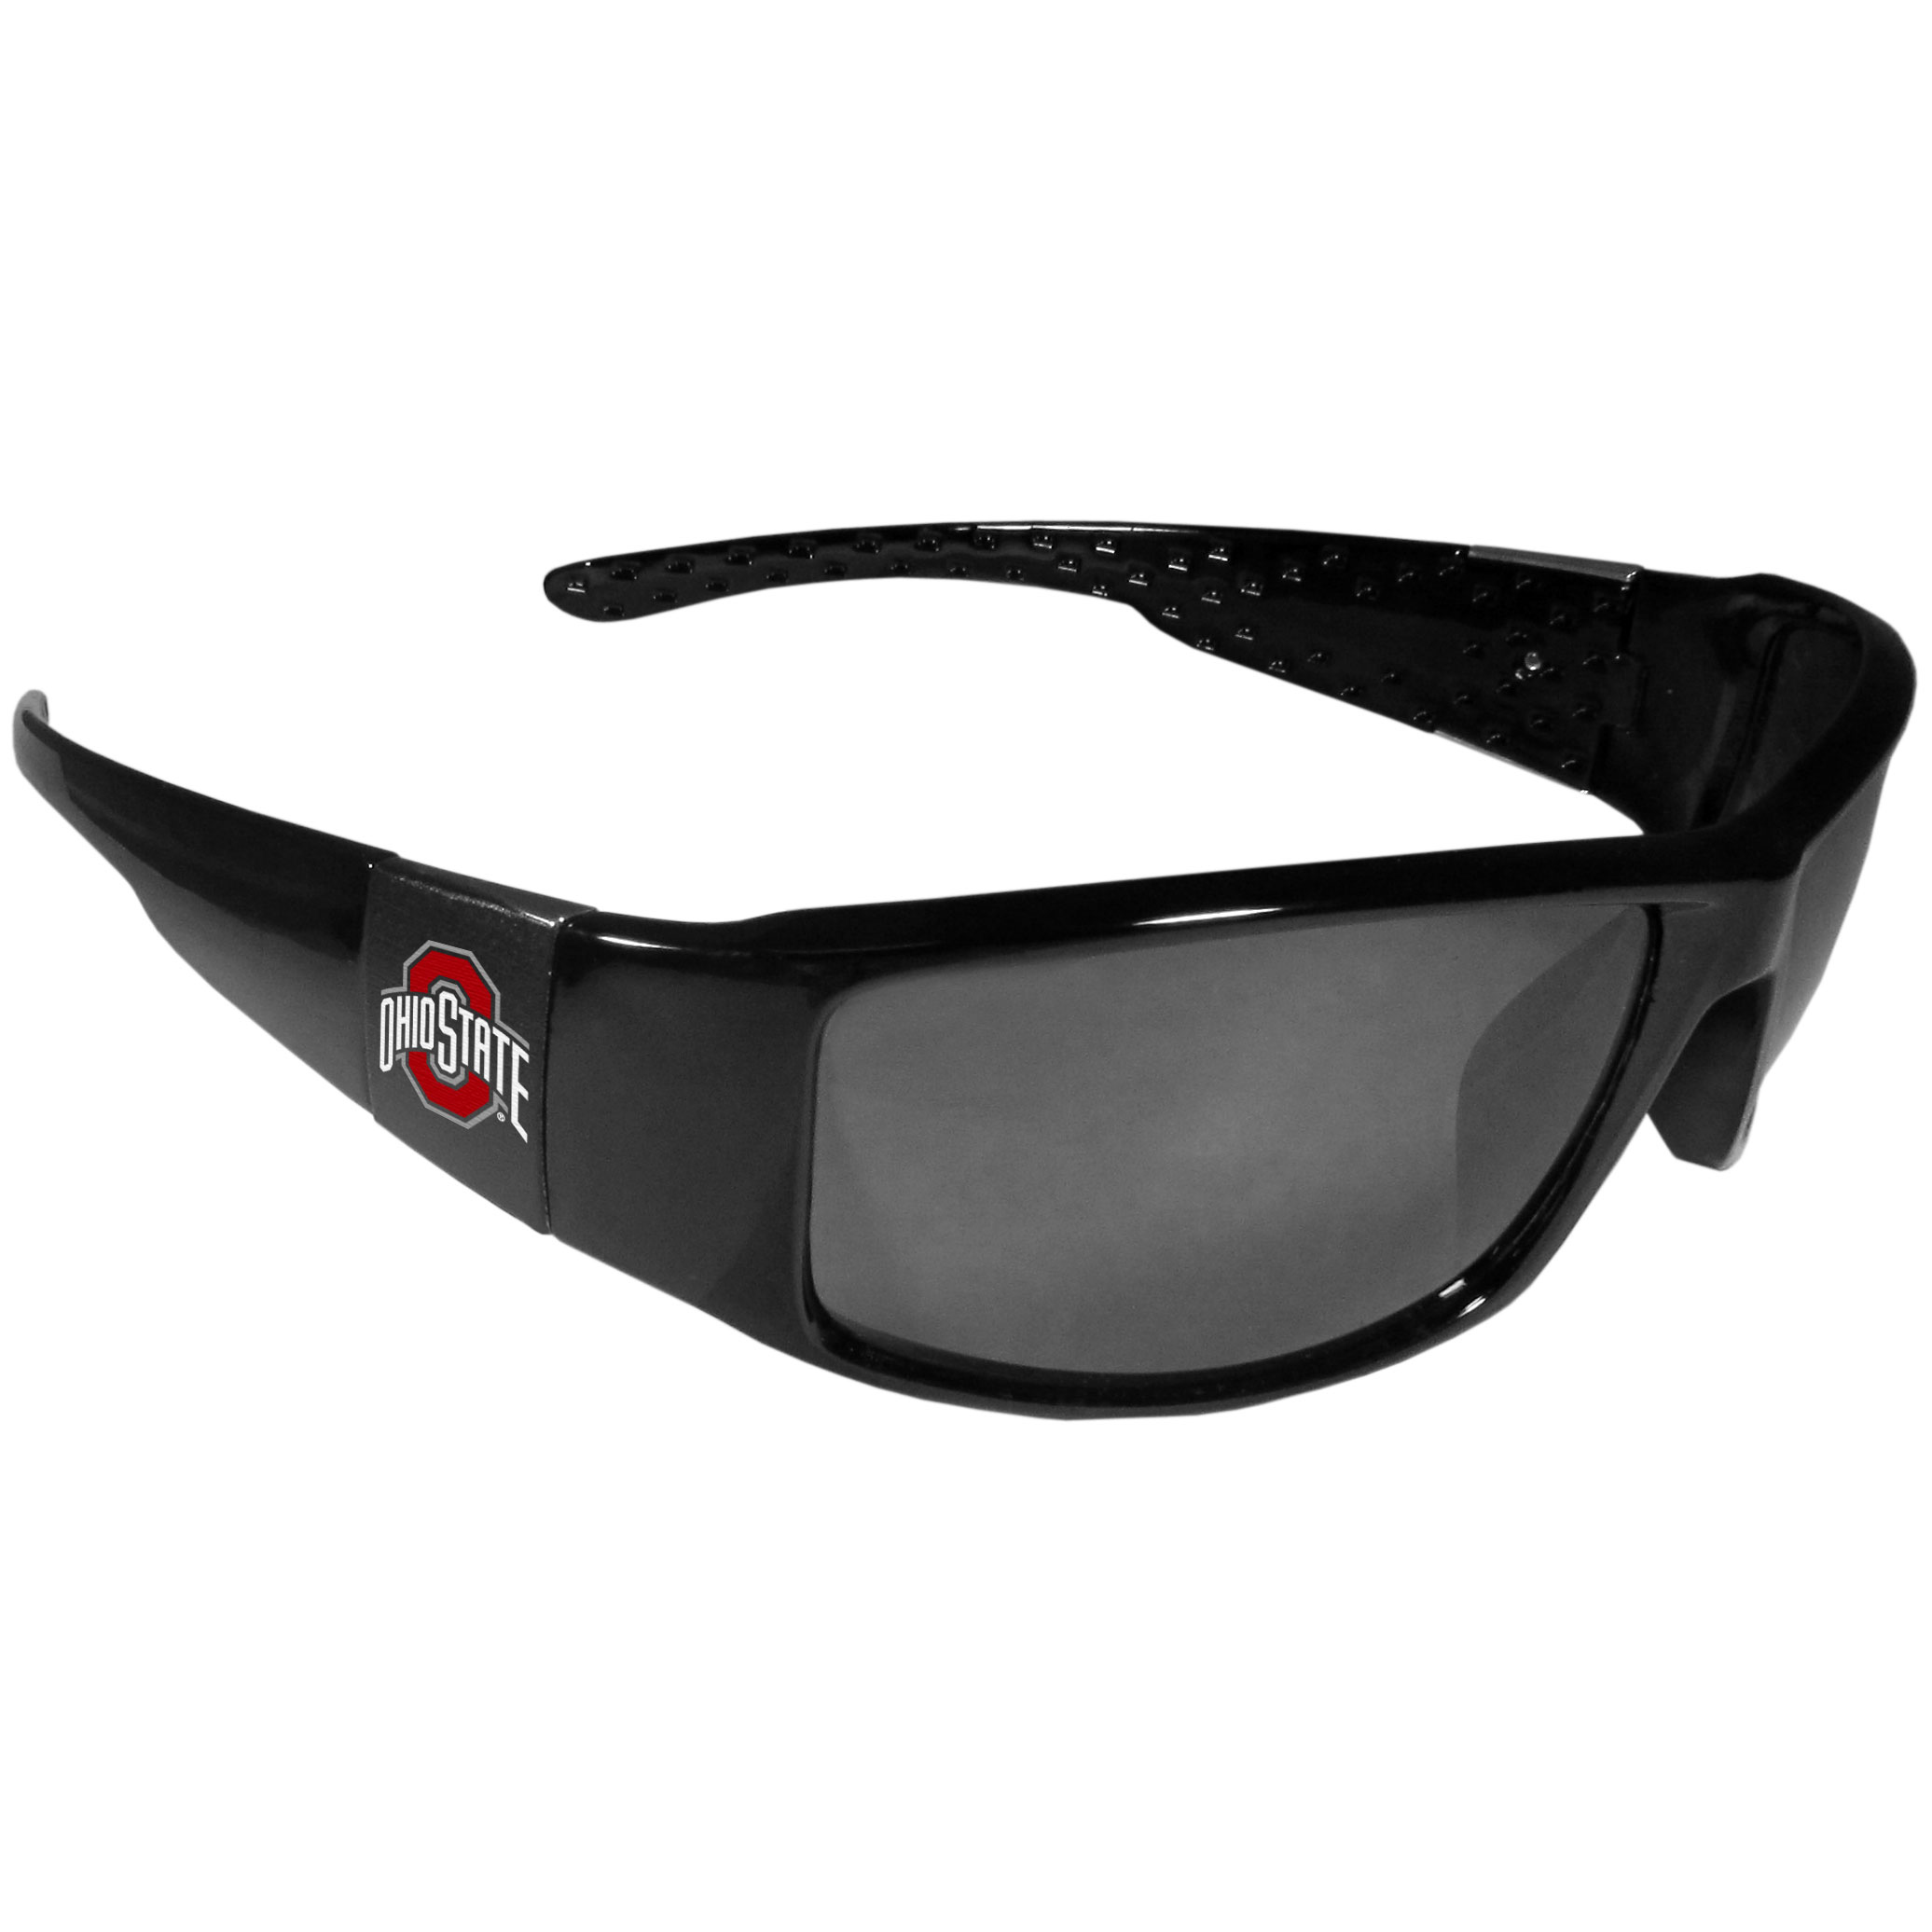 Ohio St. Buckeyes Black Wrap Sunglasses - These designer inspired frames have a sleek look in all black with  Ohio St. Buckeyes shields on each arm with a printed logo. The shades are perfect for any outdoor activity like; golfing, driving, hiking, fishing or cheering on the team at a tailgating event or at a home game day BBQ with a lens rating of 100% UVA/UVB for maximum UV protection. The high-quality frames are as durable as they are fashionable and with their classic look they are the perfect fan accessory that can be worn everyday for every occasion.